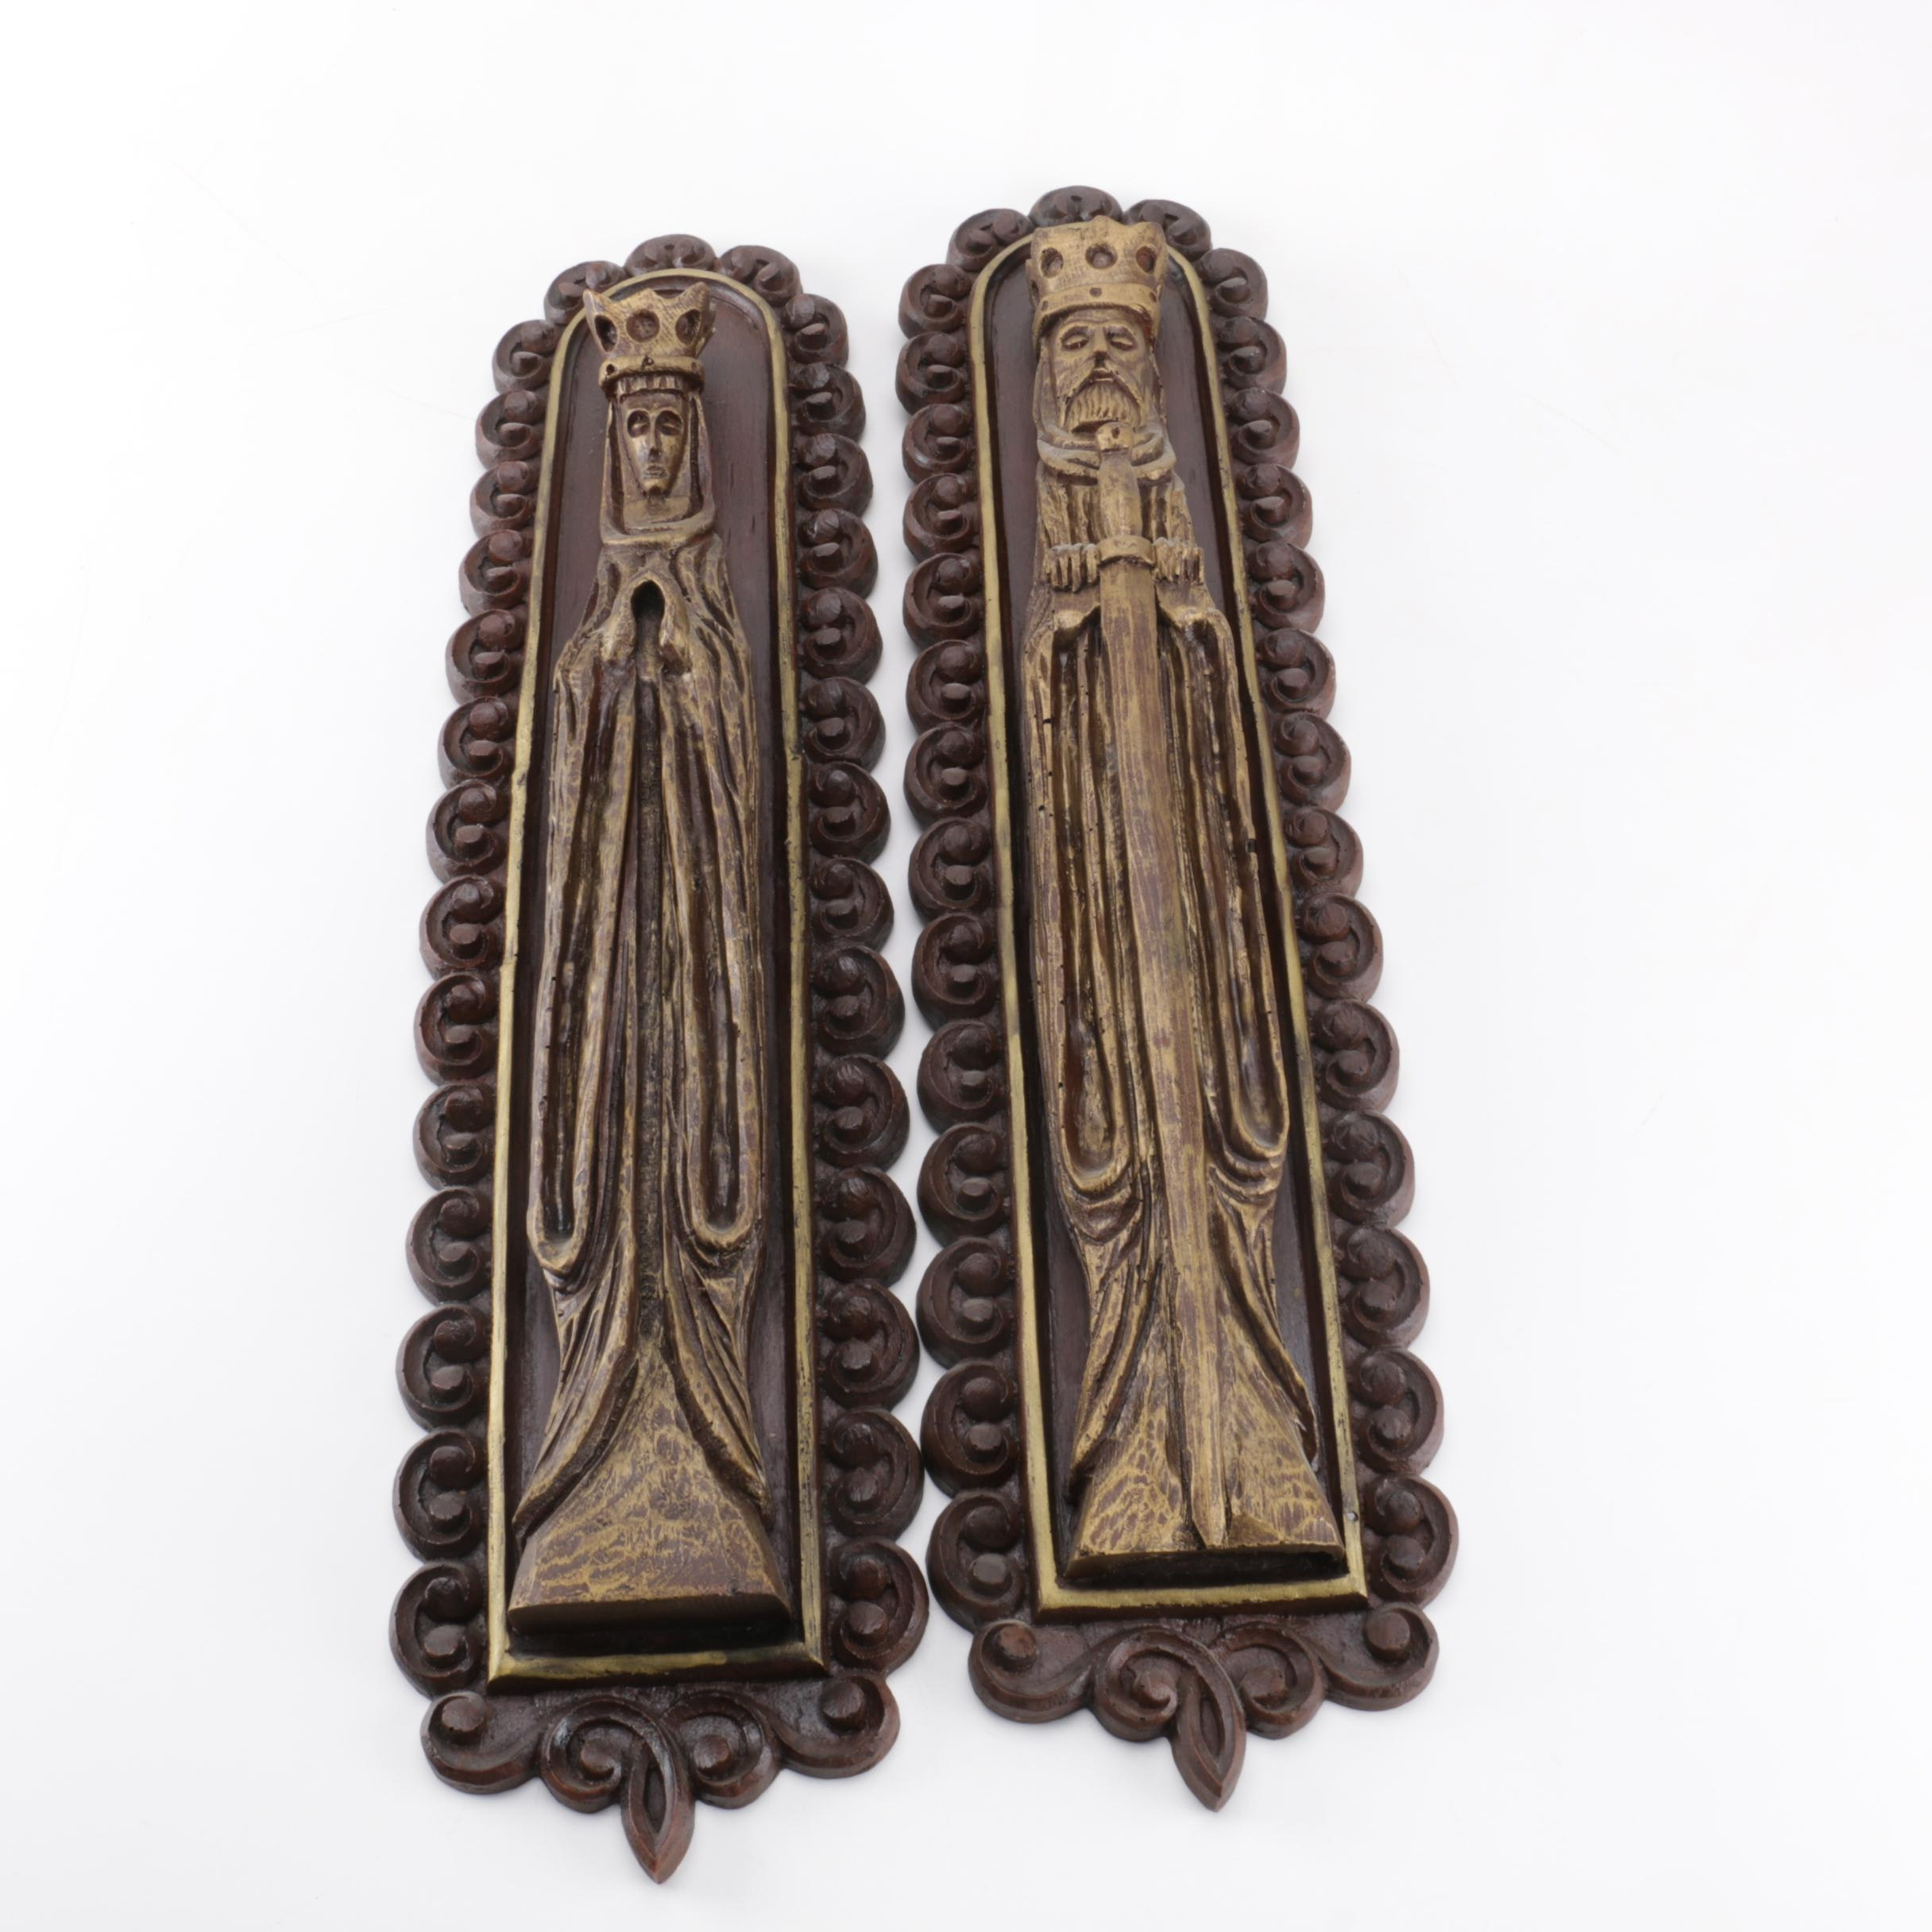 Carved Wooden King and Queen Wall Hangings